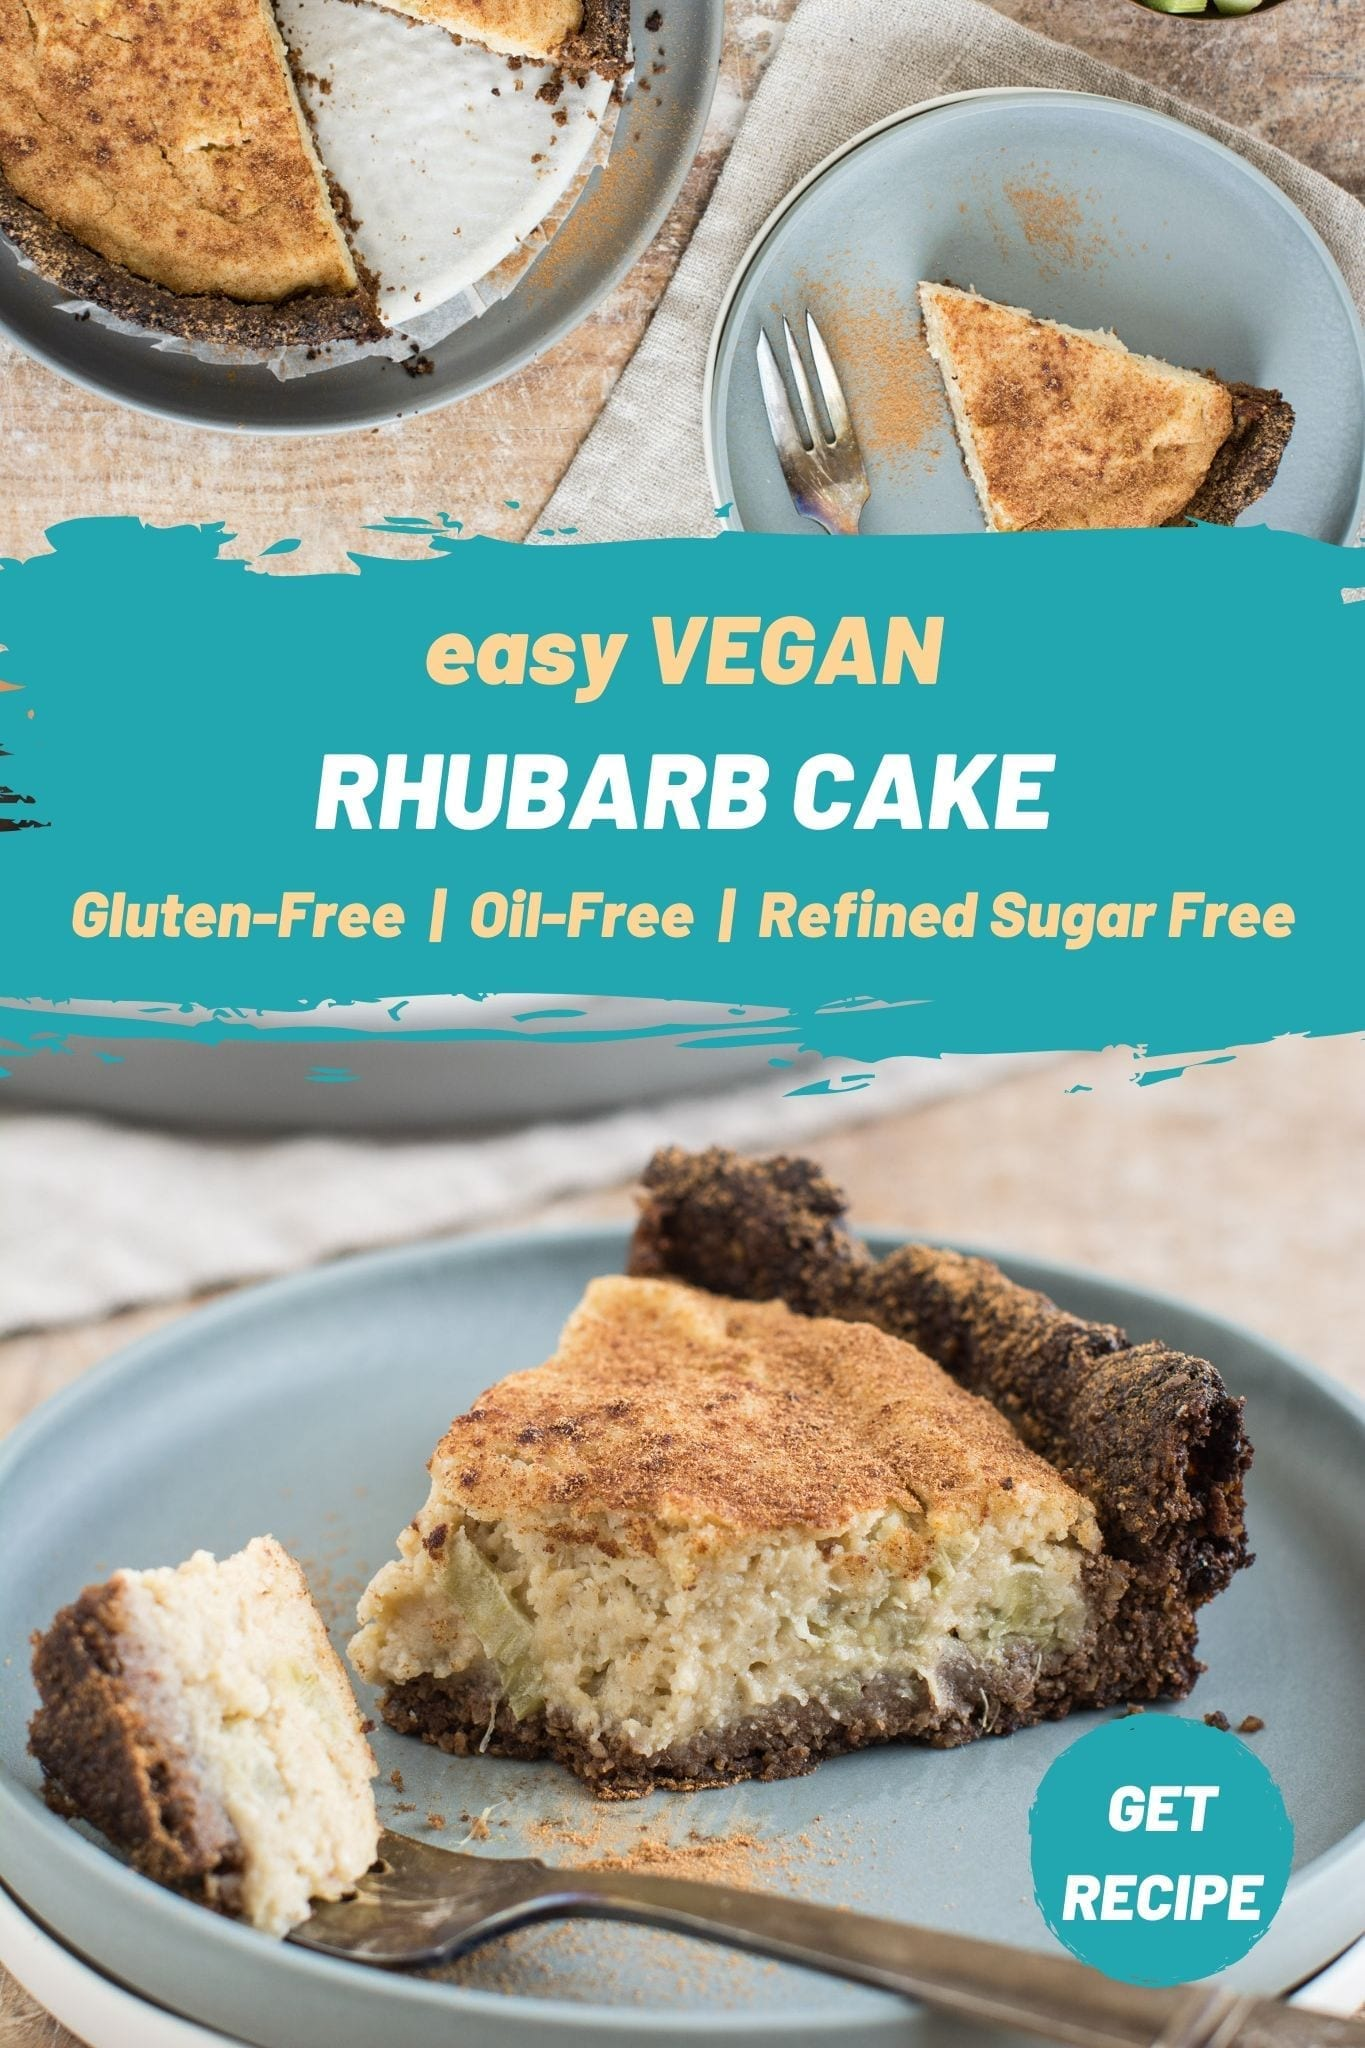 This easy gluten-free vegan rhubarb cake has only 10 ingredients and doesn't require advanced baking skills. The dairy free filling is creamy and moist perfectly combining the sweetness of the batter and sourness of rhubarb.